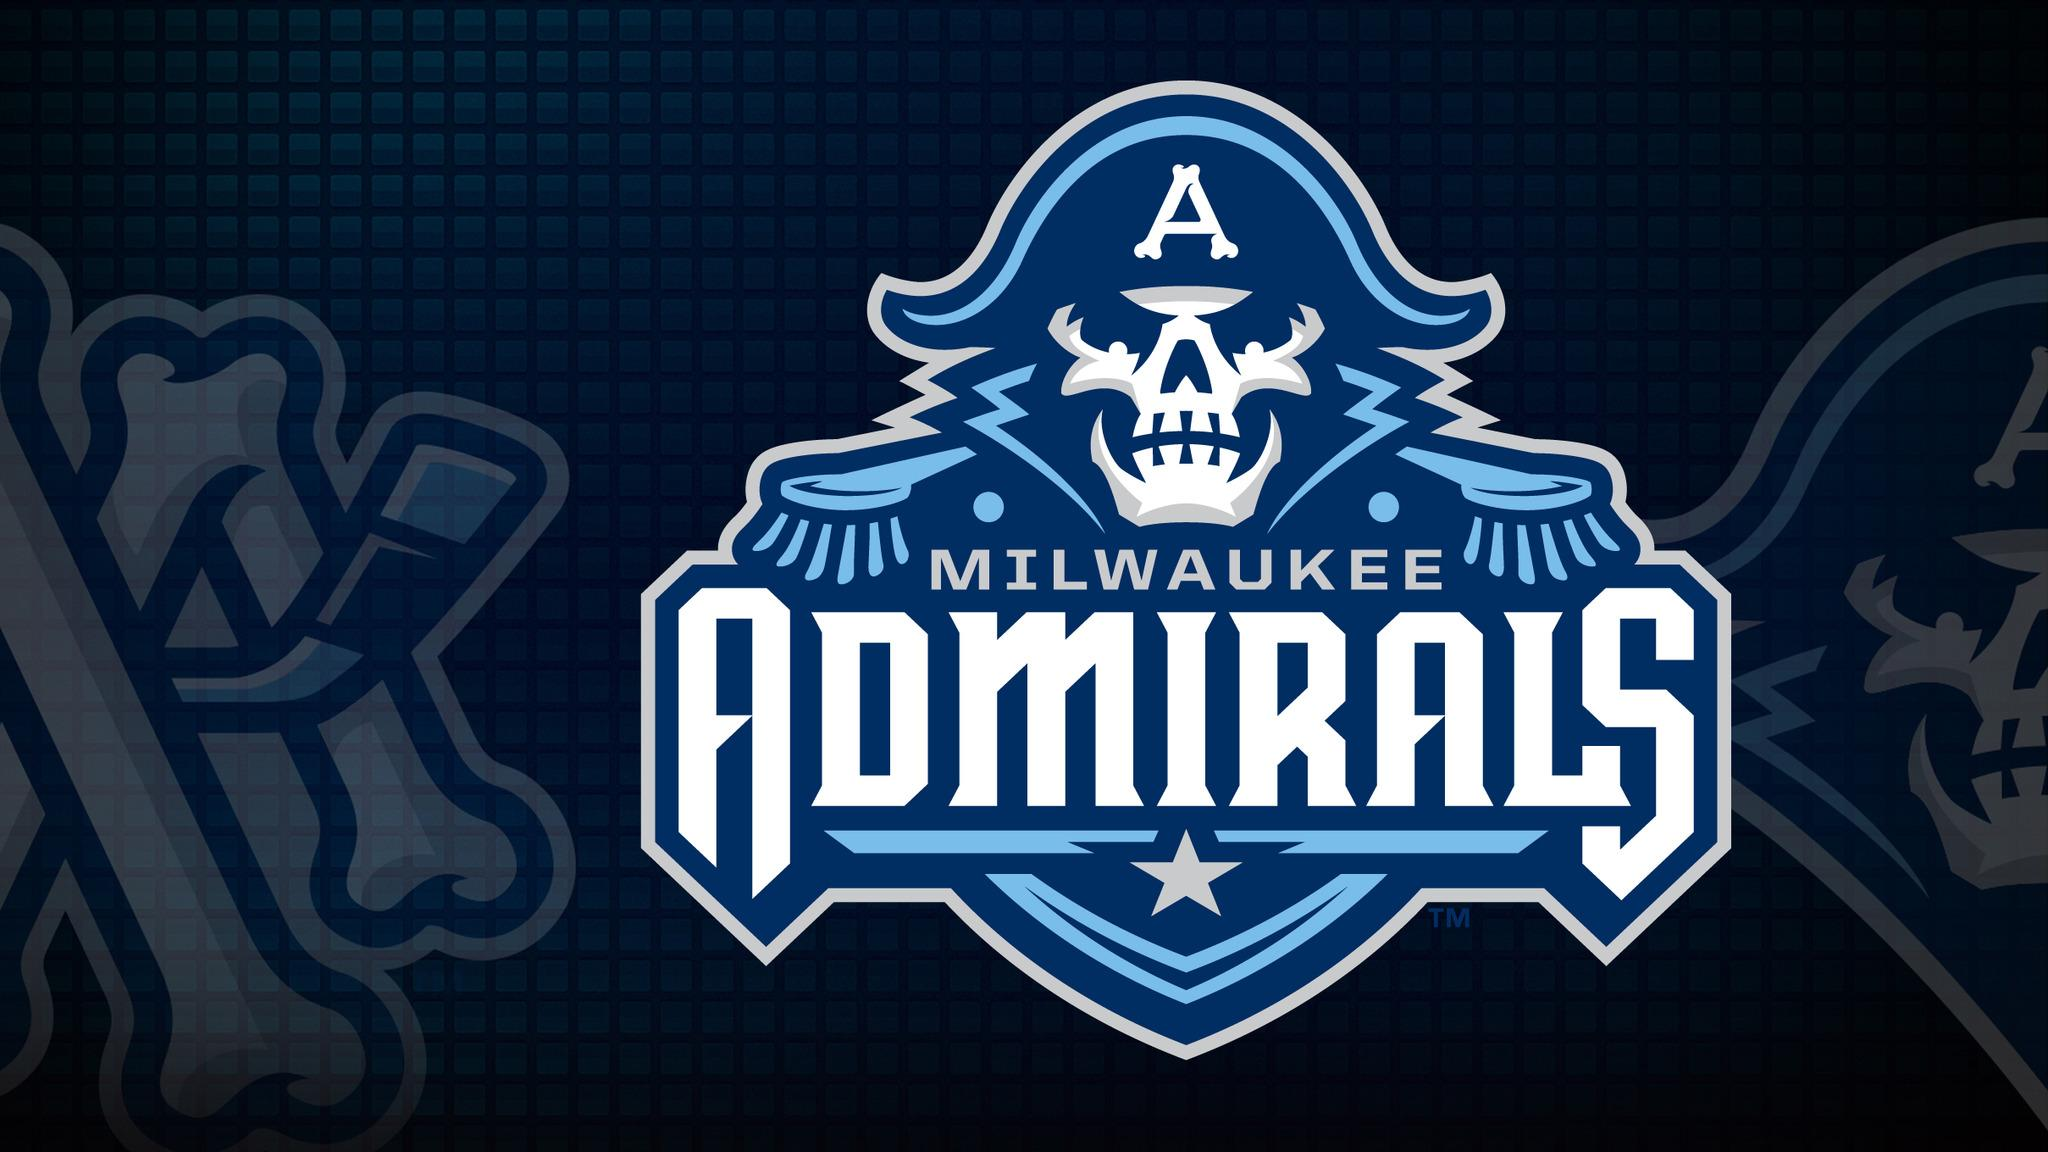 Milwaukee Admirals vs. Grand Rapids Griffins